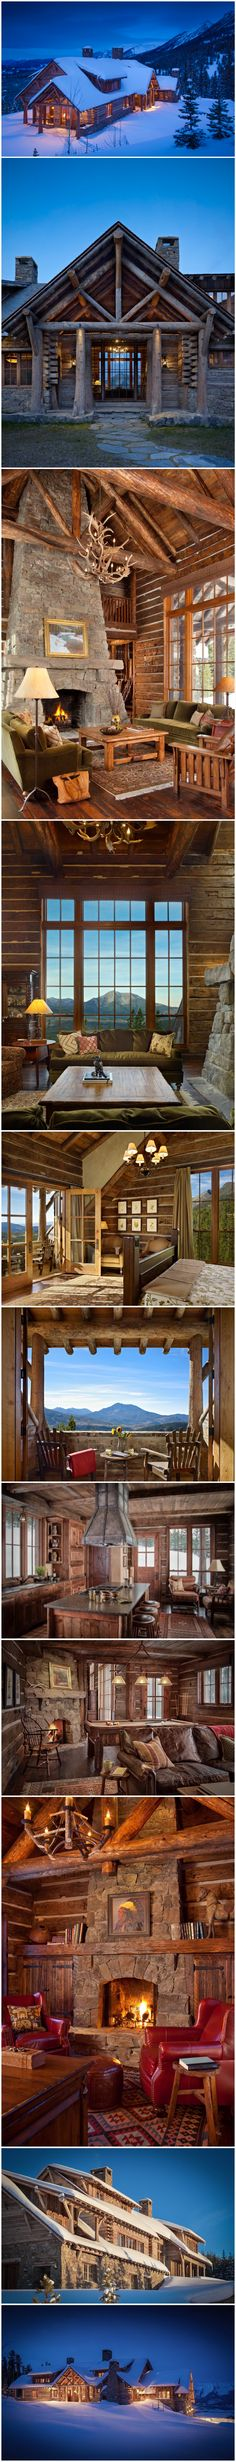 Custom Log Home Architecture by Miller & Co. Log Cabin Living, Log Cabin Homes, Log Cabins, Moonlight Basin, Dream Properties, Winter Cabin, Cabins And Cottages, Cabin Plans, Cabins In The Woods